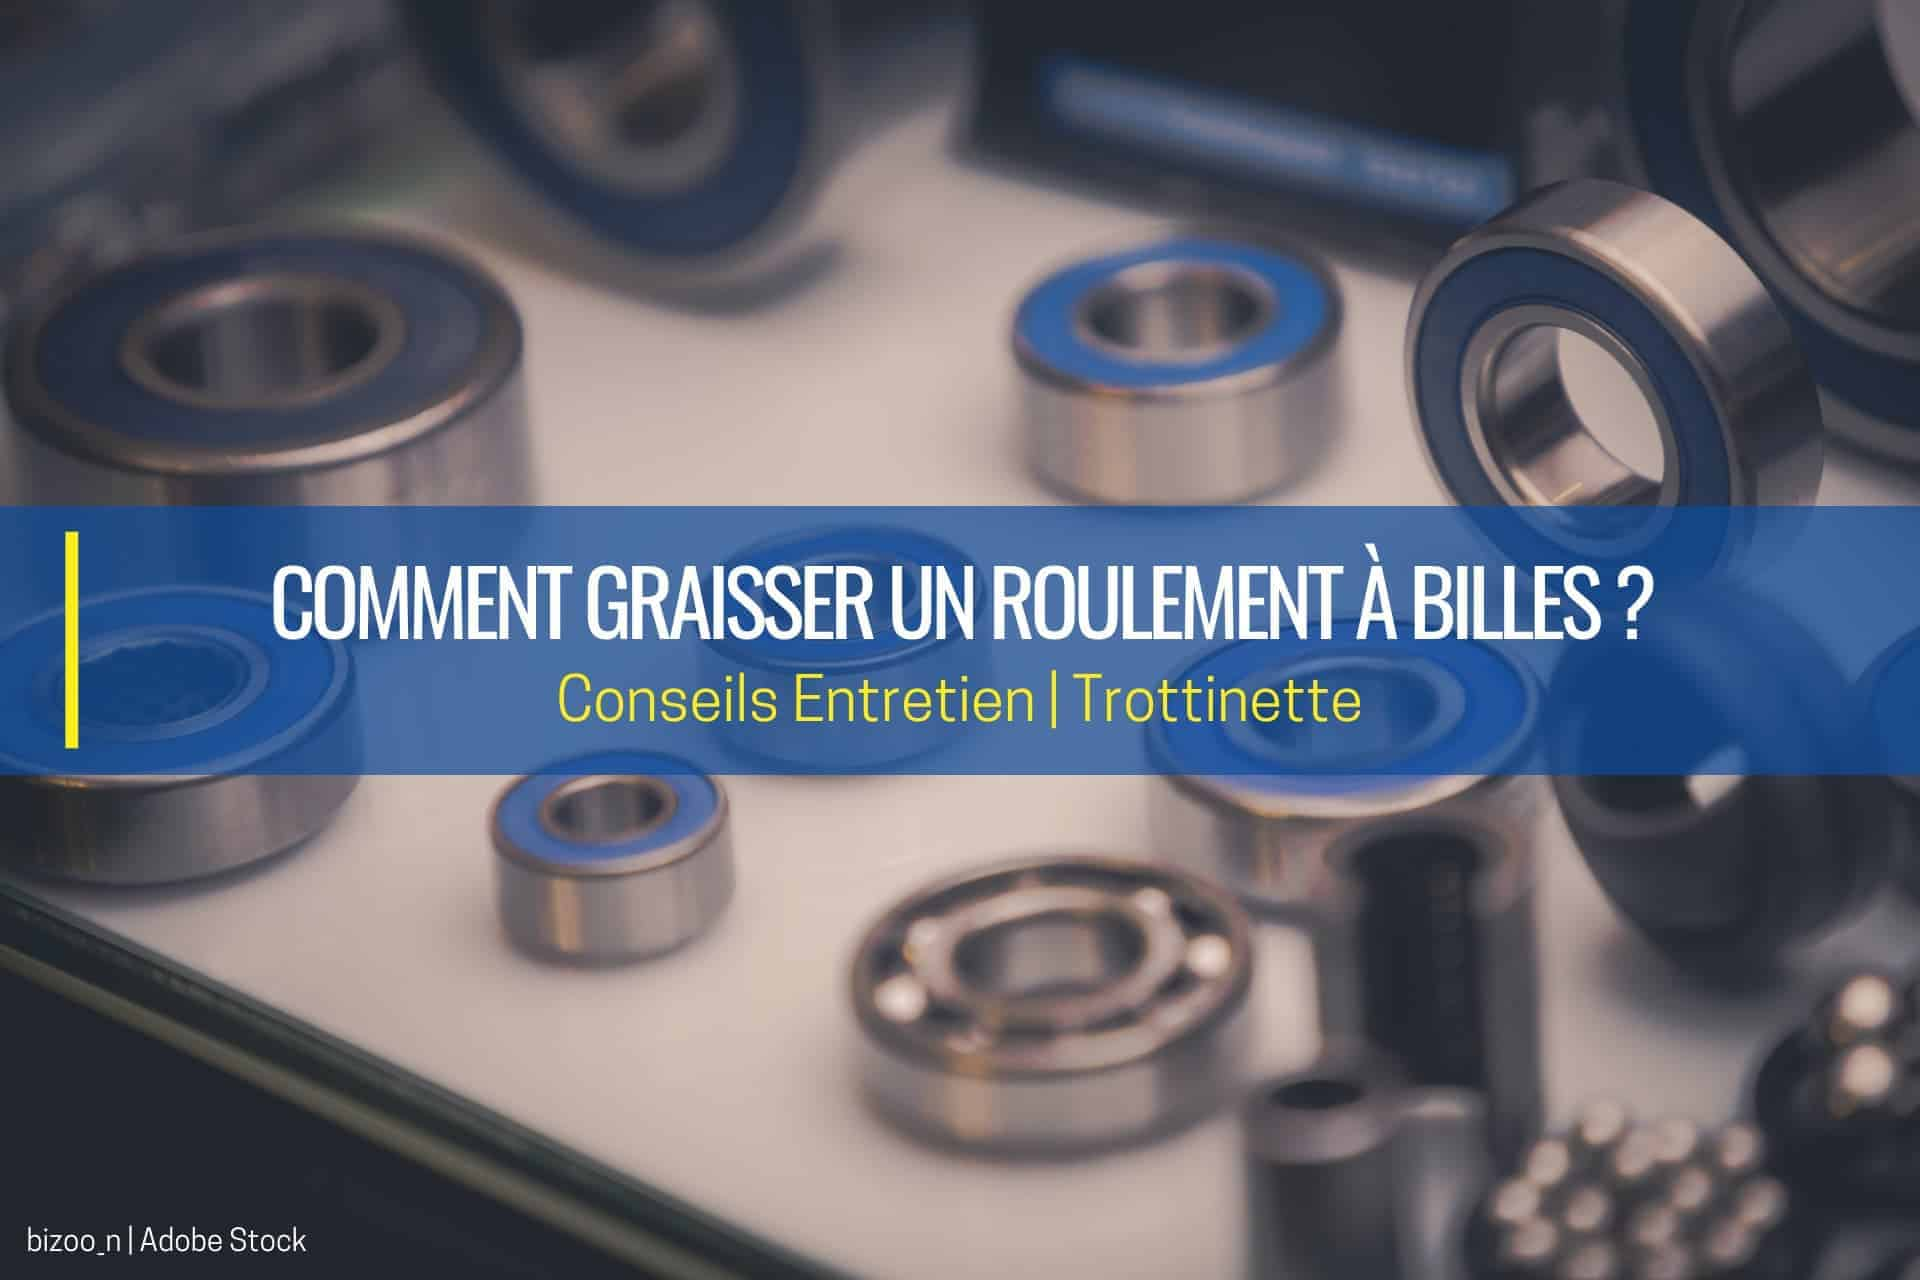 graisser un roulement à billes